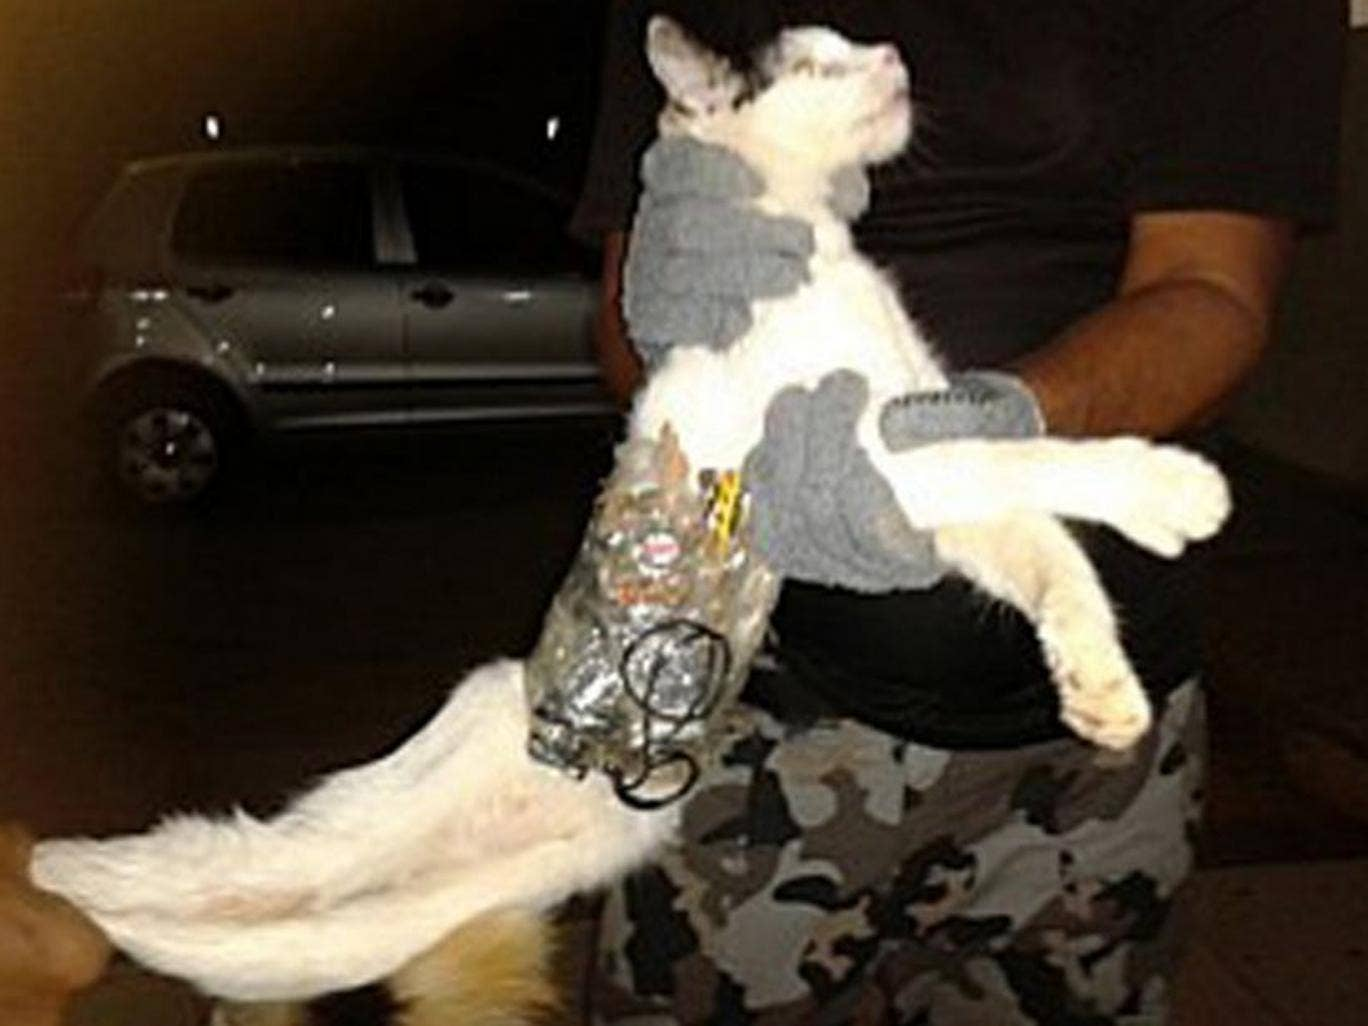 A prison guard holds the cat, which has objects wrapped around his body with tape at the prison in Arapiraca